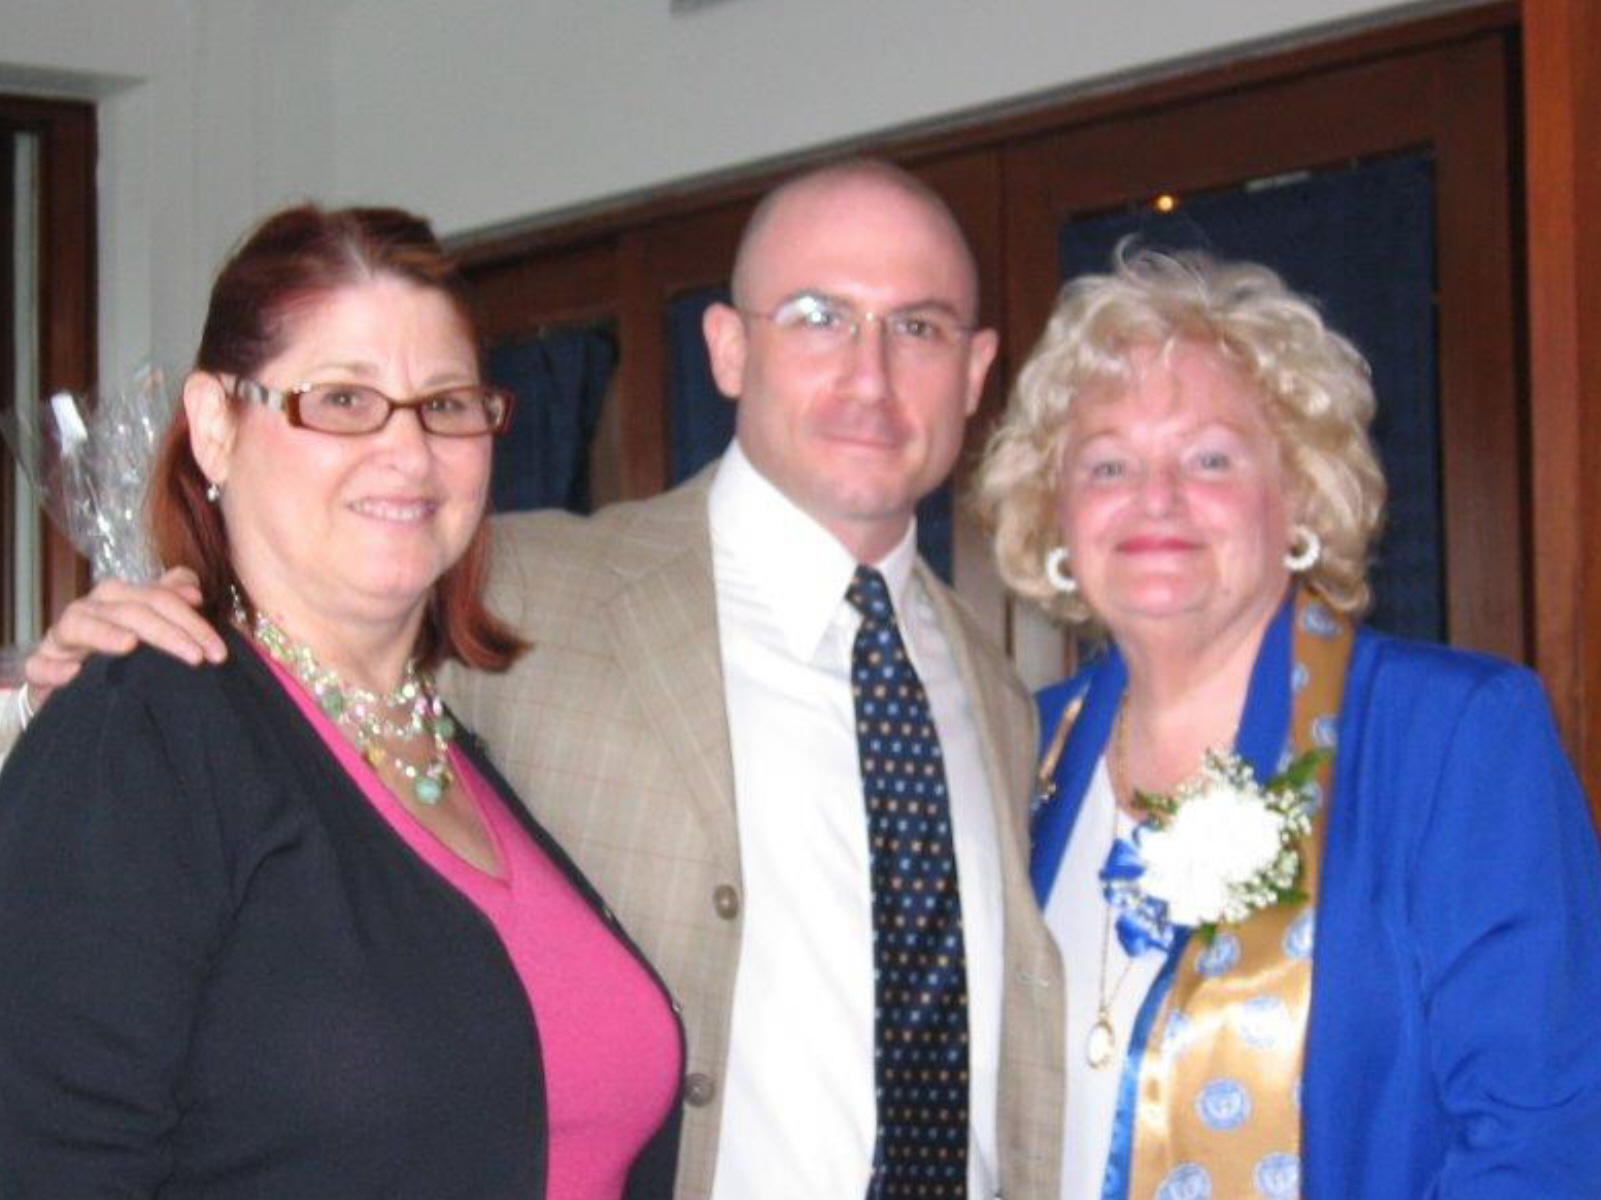 Community Service Awards Luncheon 6-10-06 Bette Levy, Dr. Brenner, Dee Carroll.j